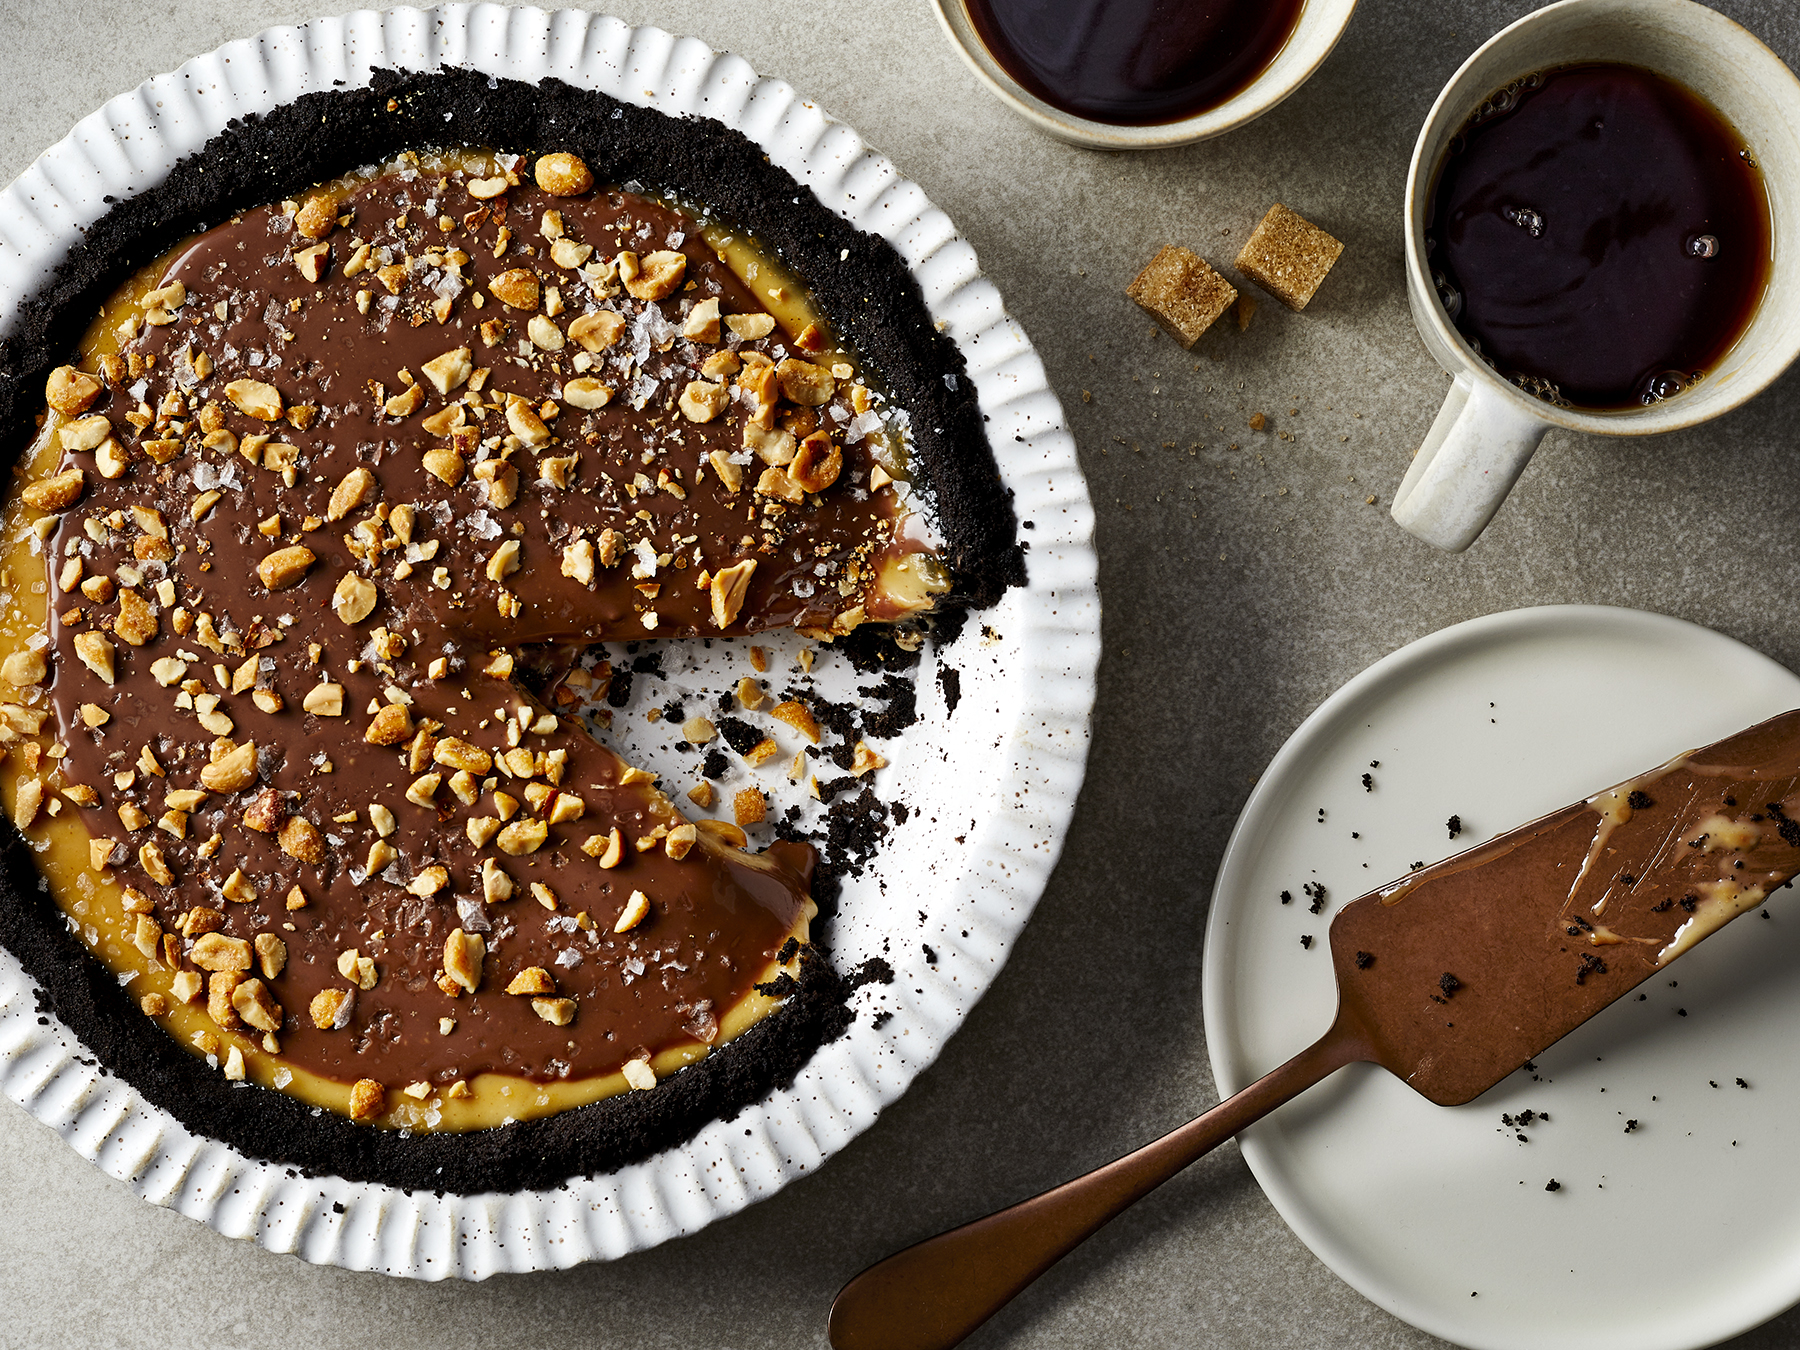 Peanut Butter–Chocolate Pie